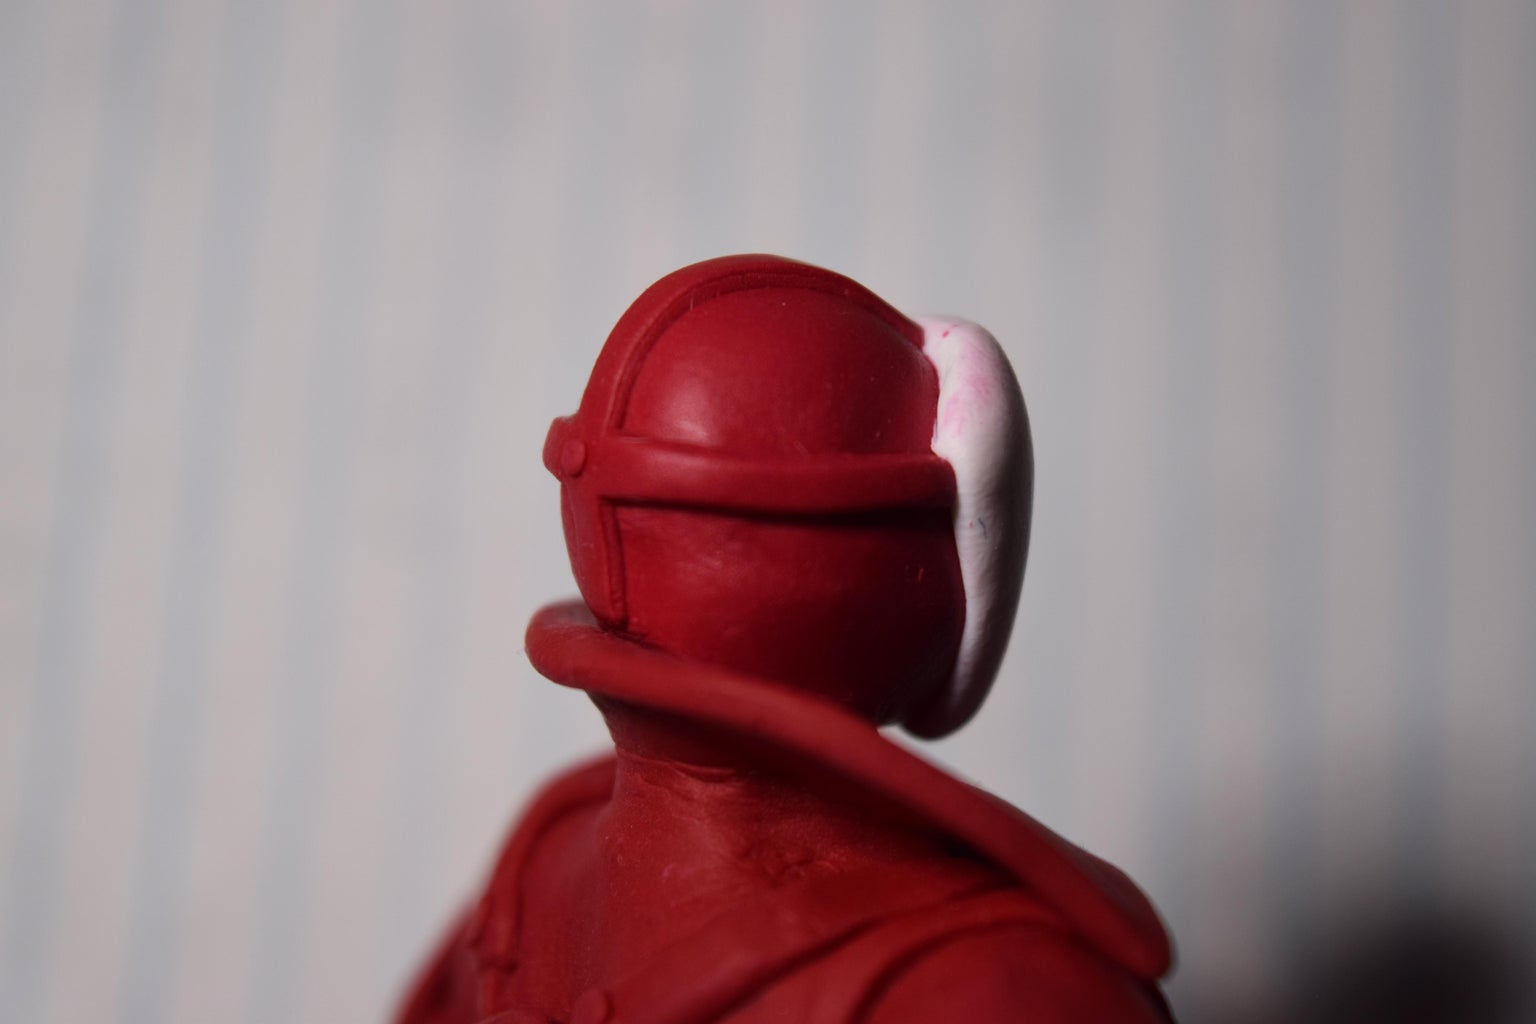 Creating the Head: Head Details 1 (Straps + Mask)